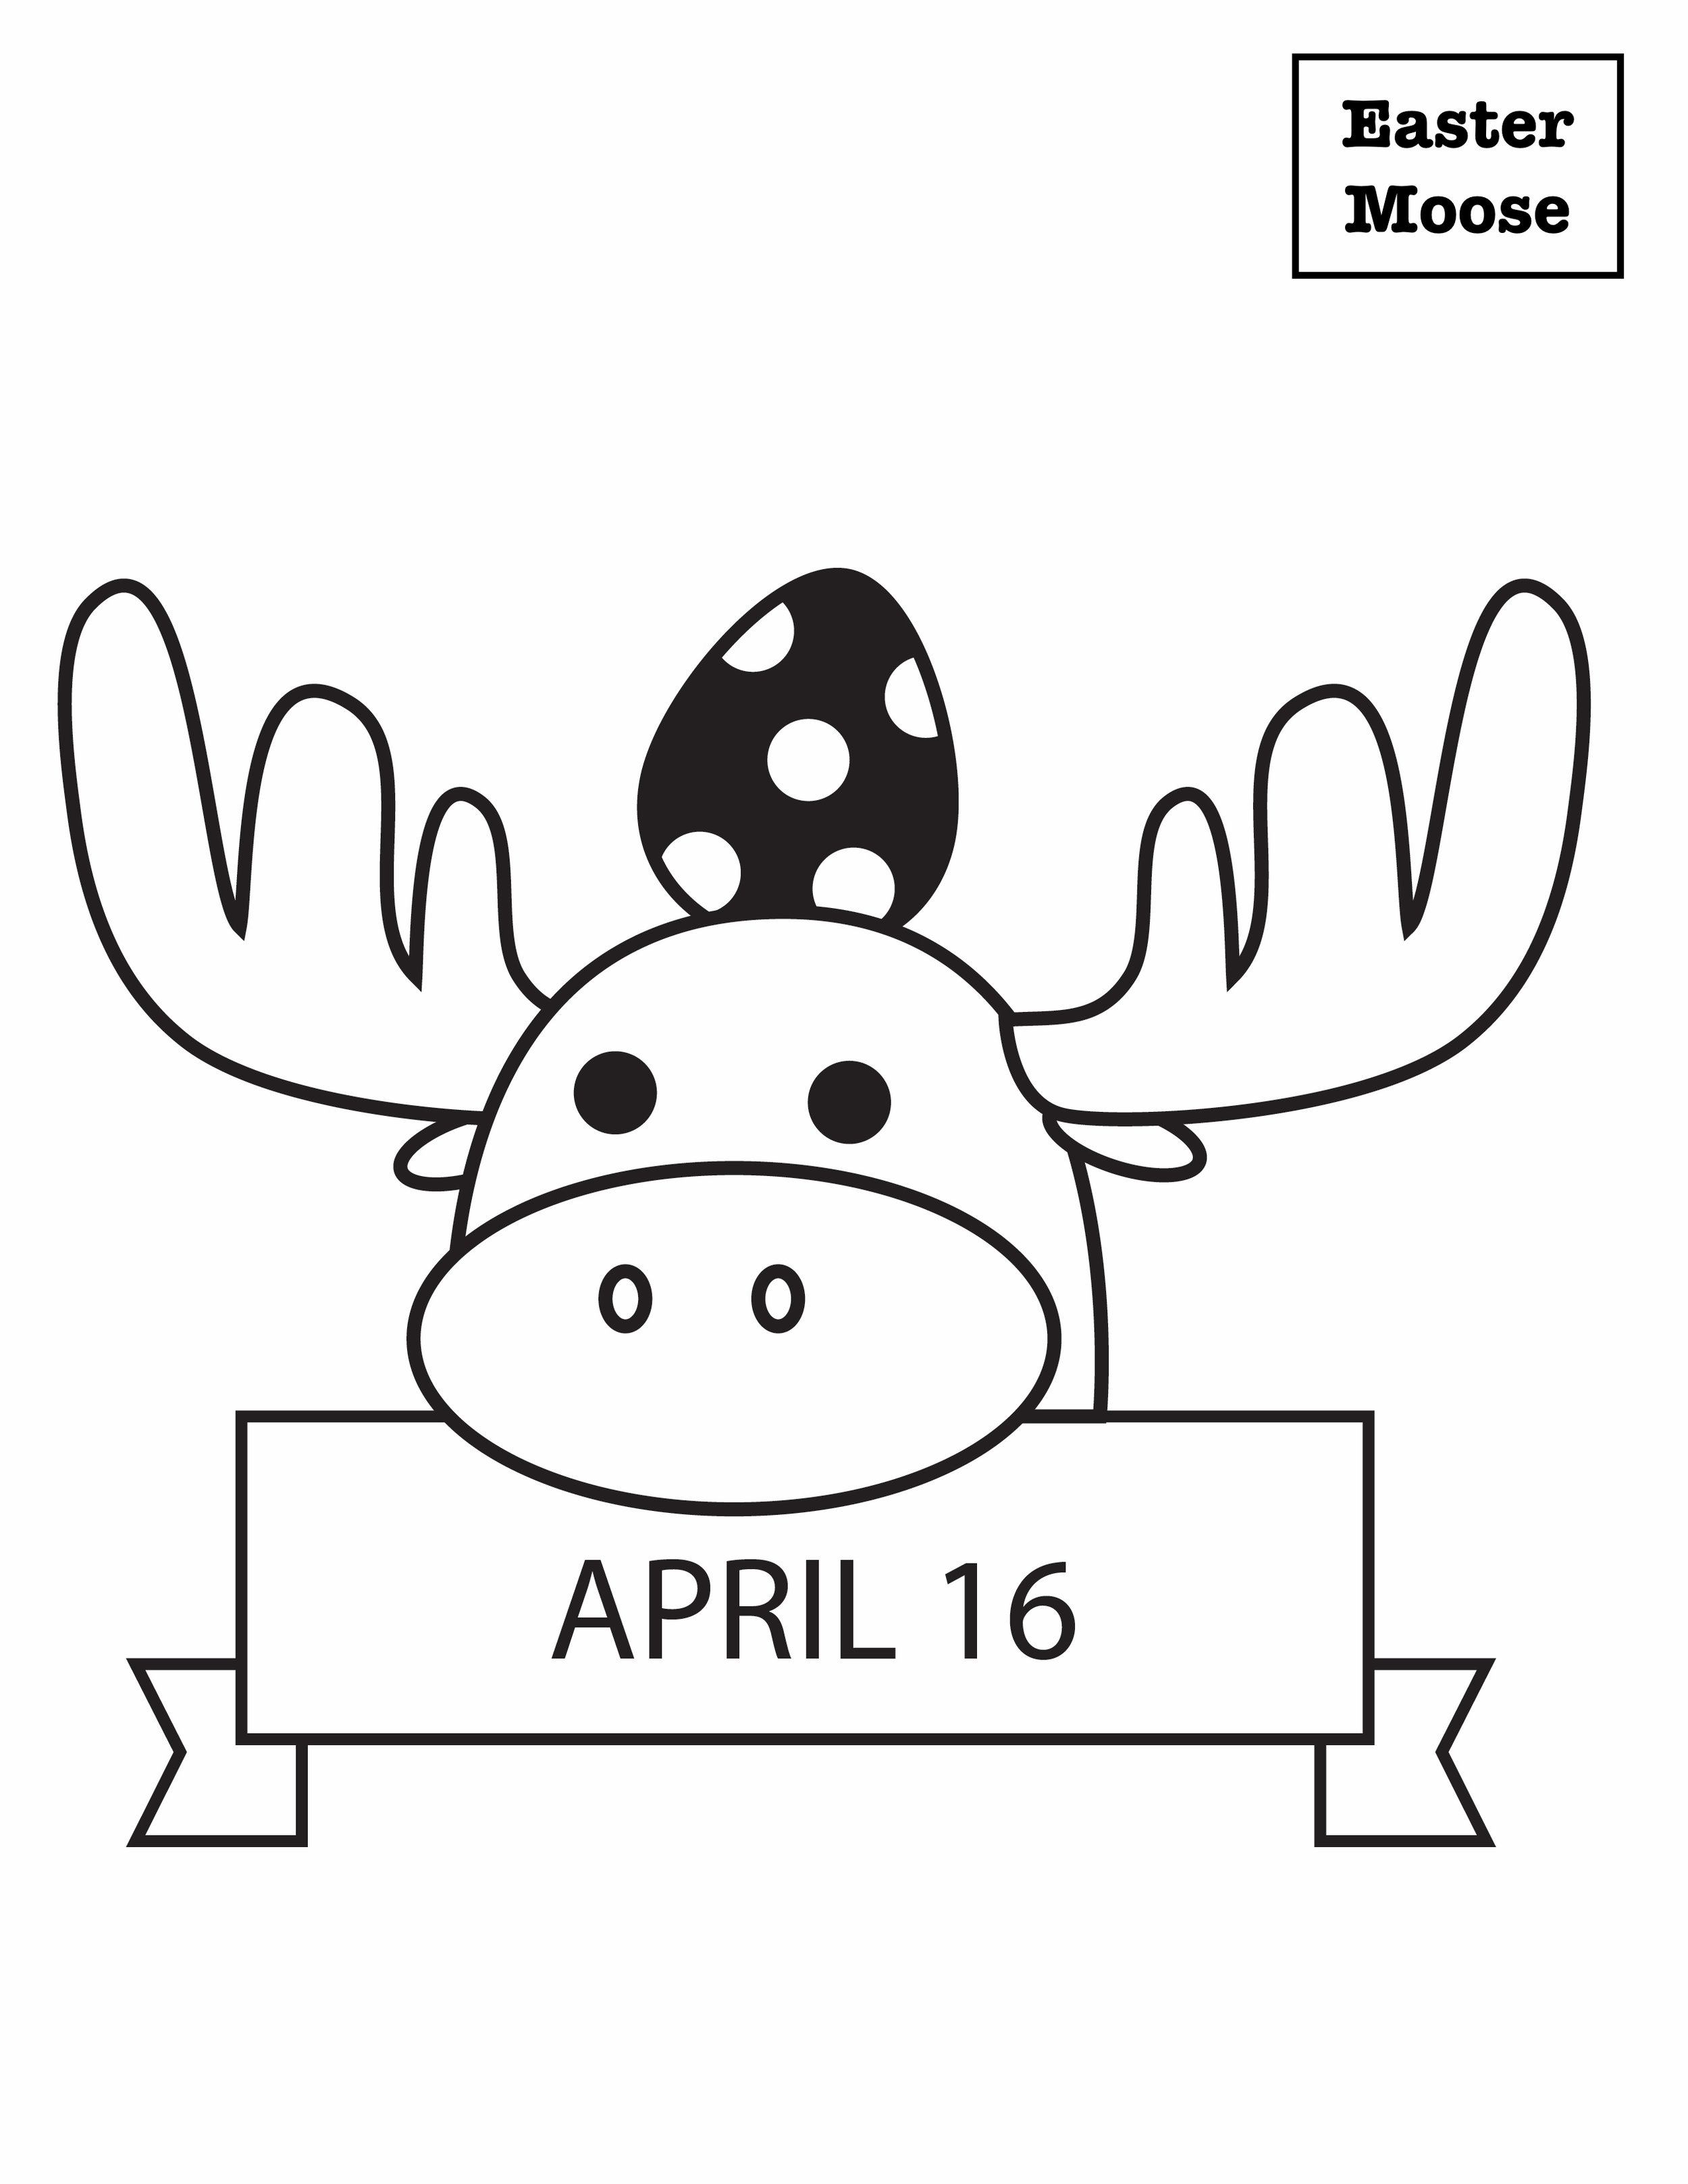 Easter Moose with Date and Tag.jpeg